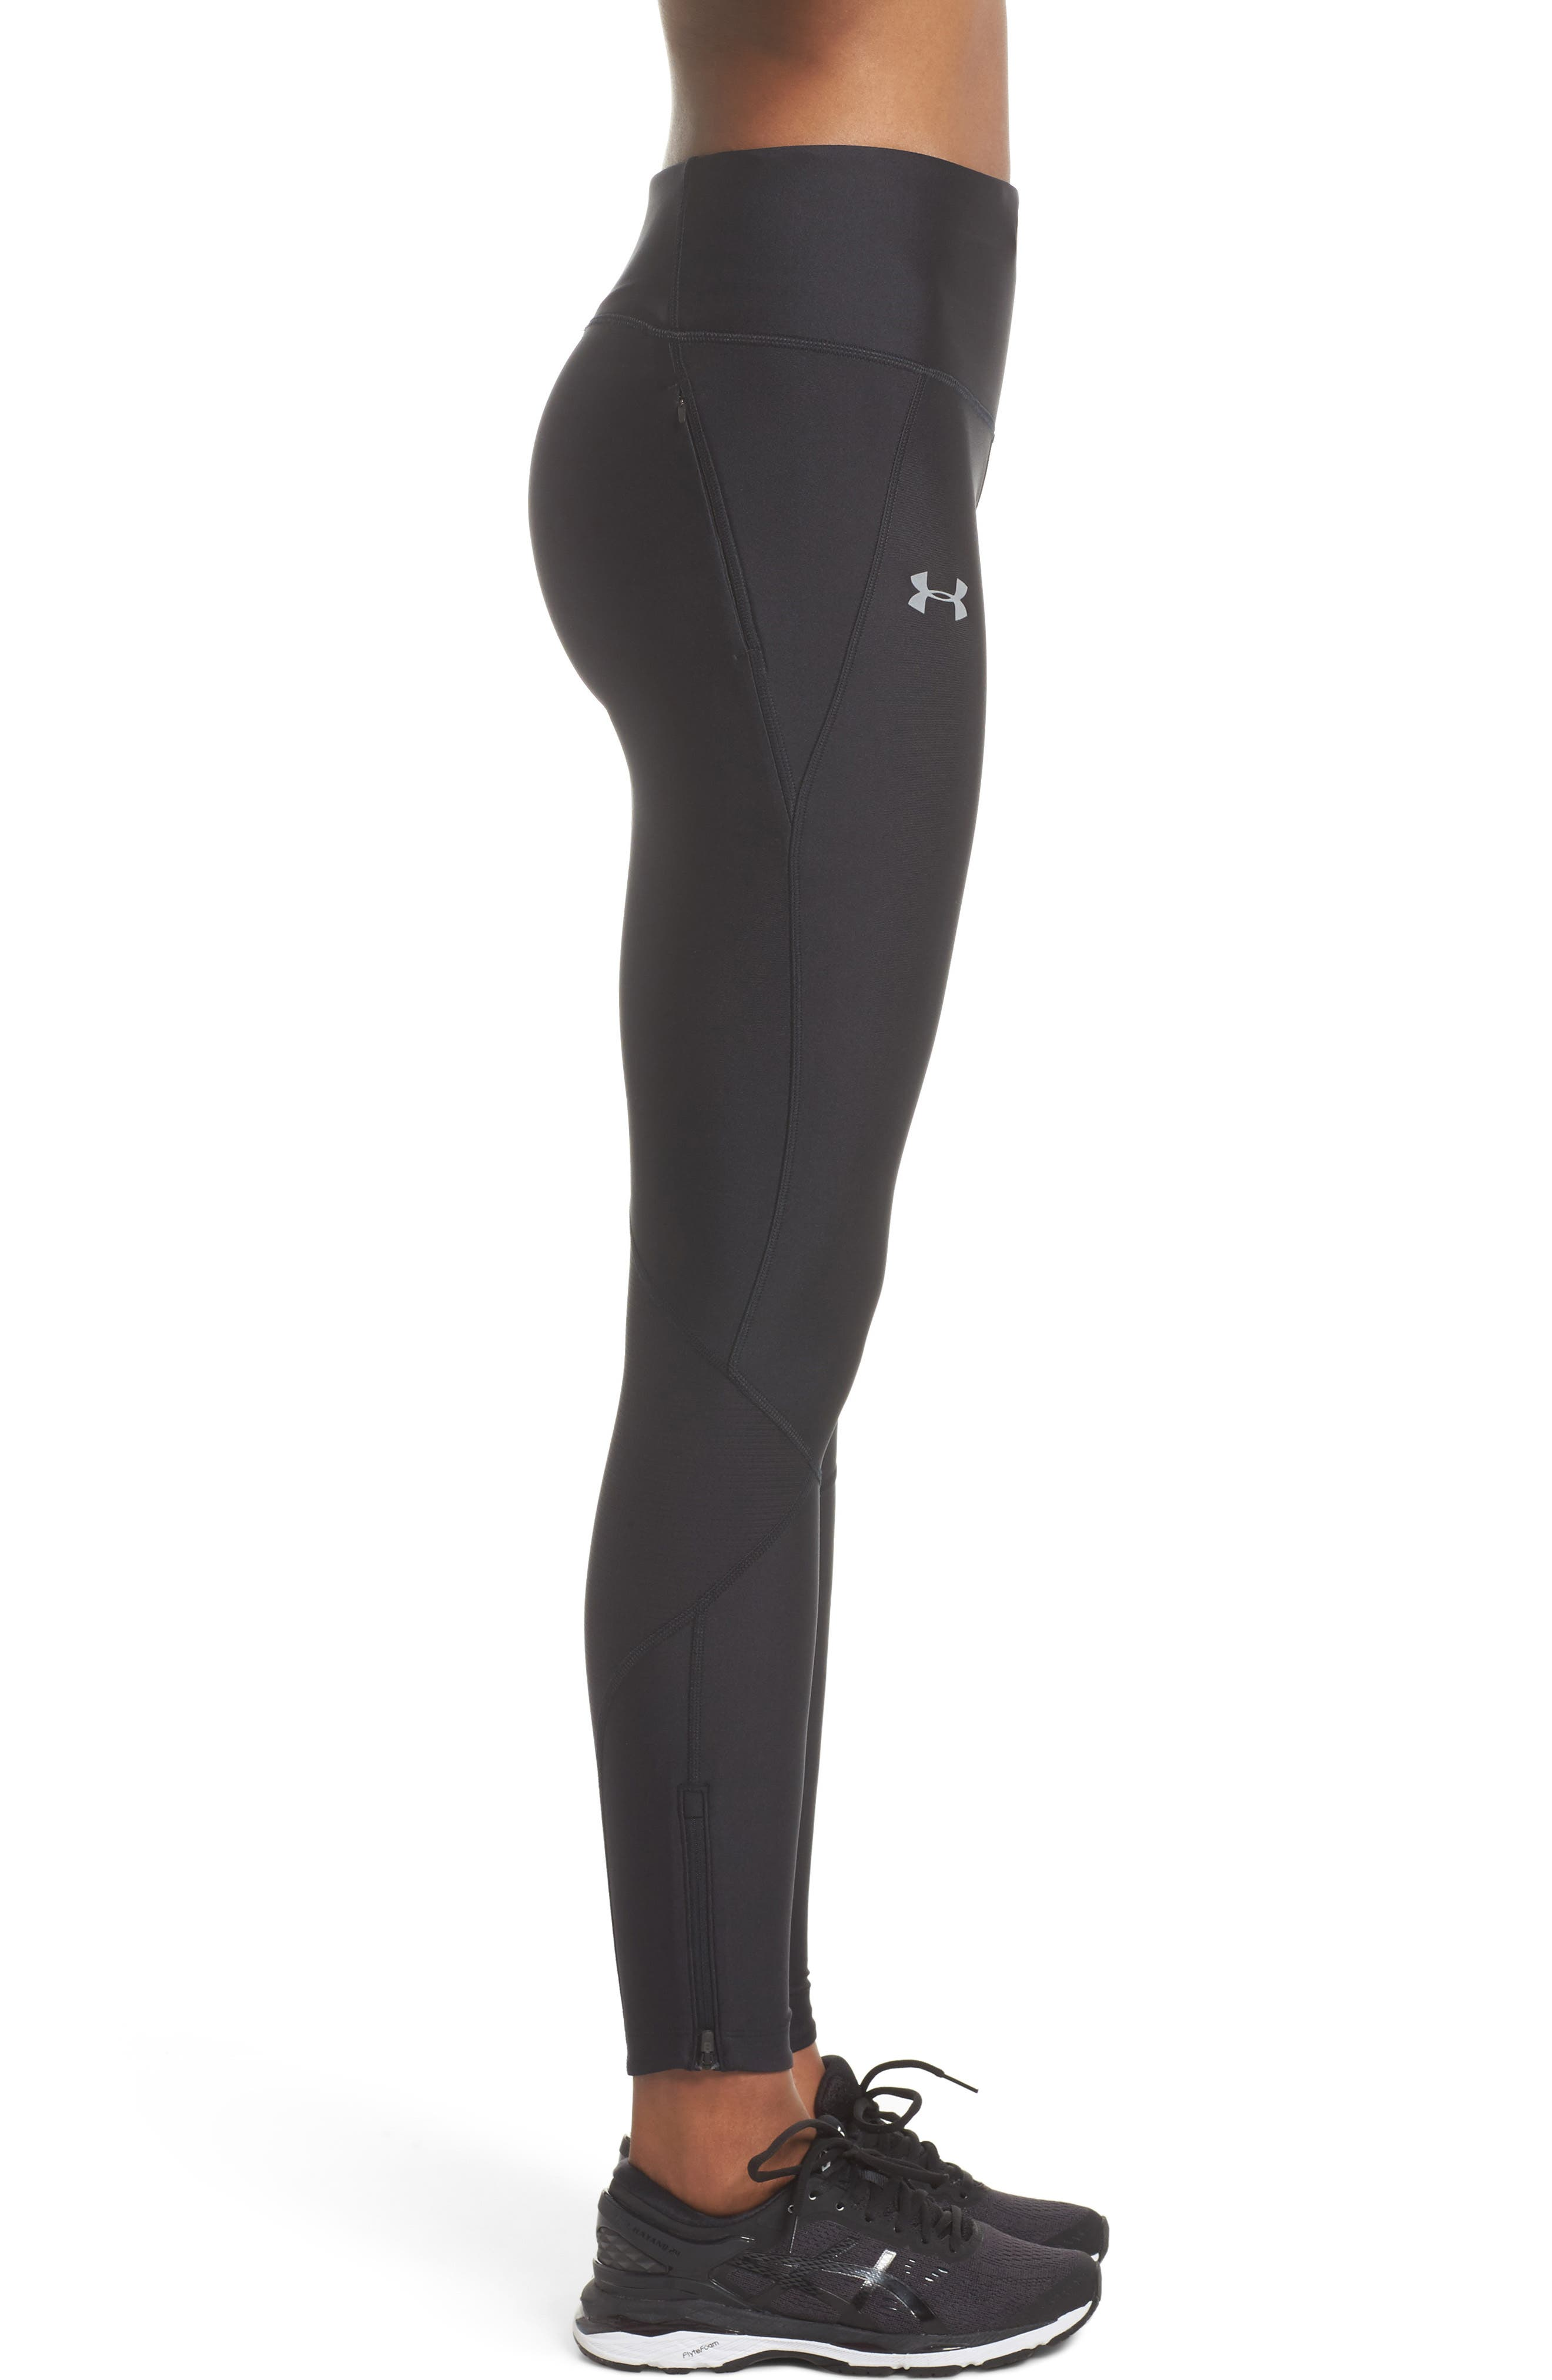 Fly Fast Tights,                             Alternate thumbnail 3, color,                             Black